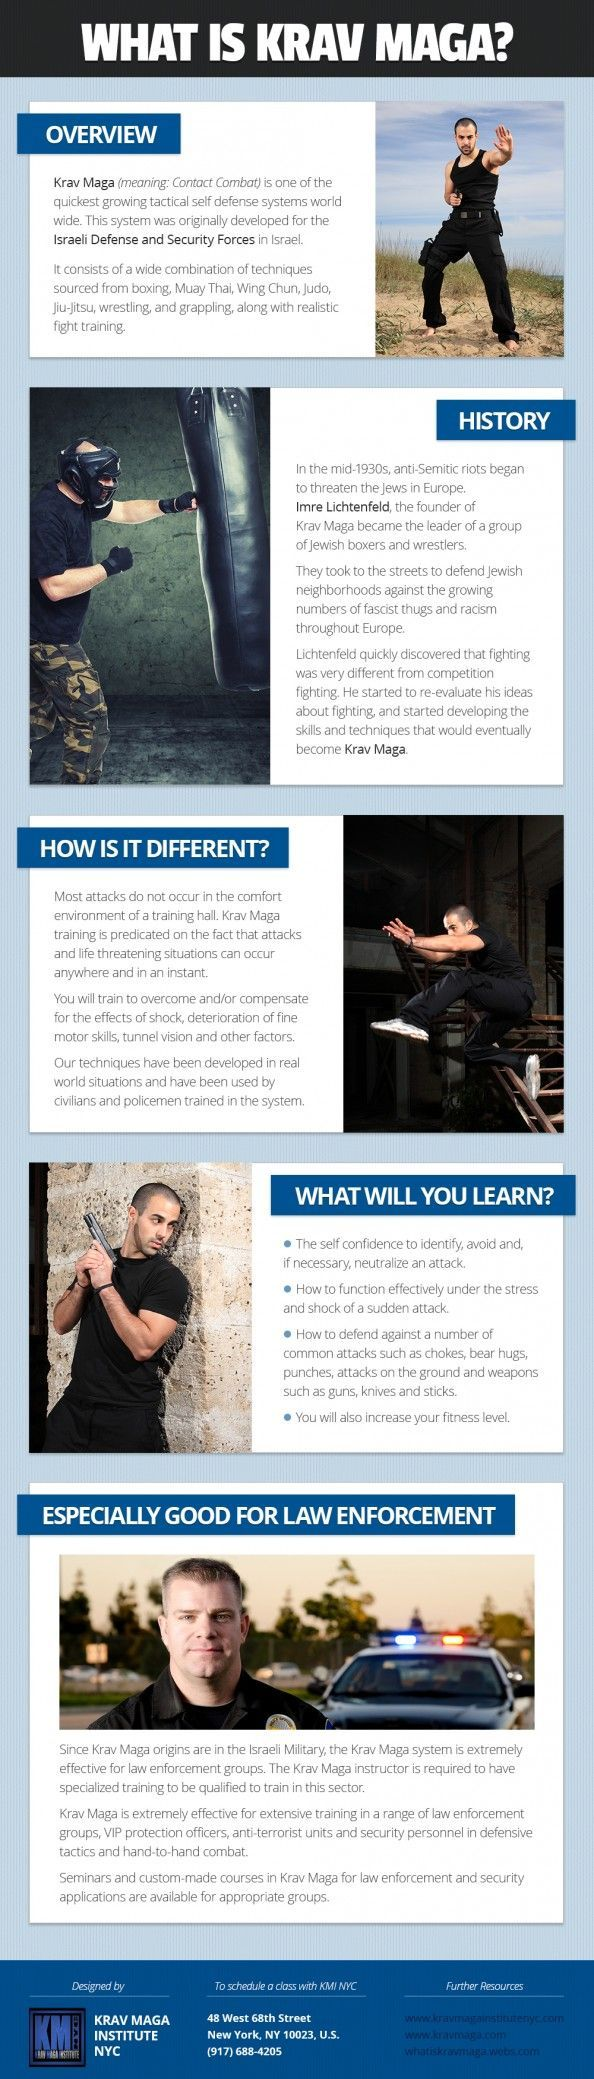 Krav Maga Self Defense System for Law Enforcment Infographic #selfdefense